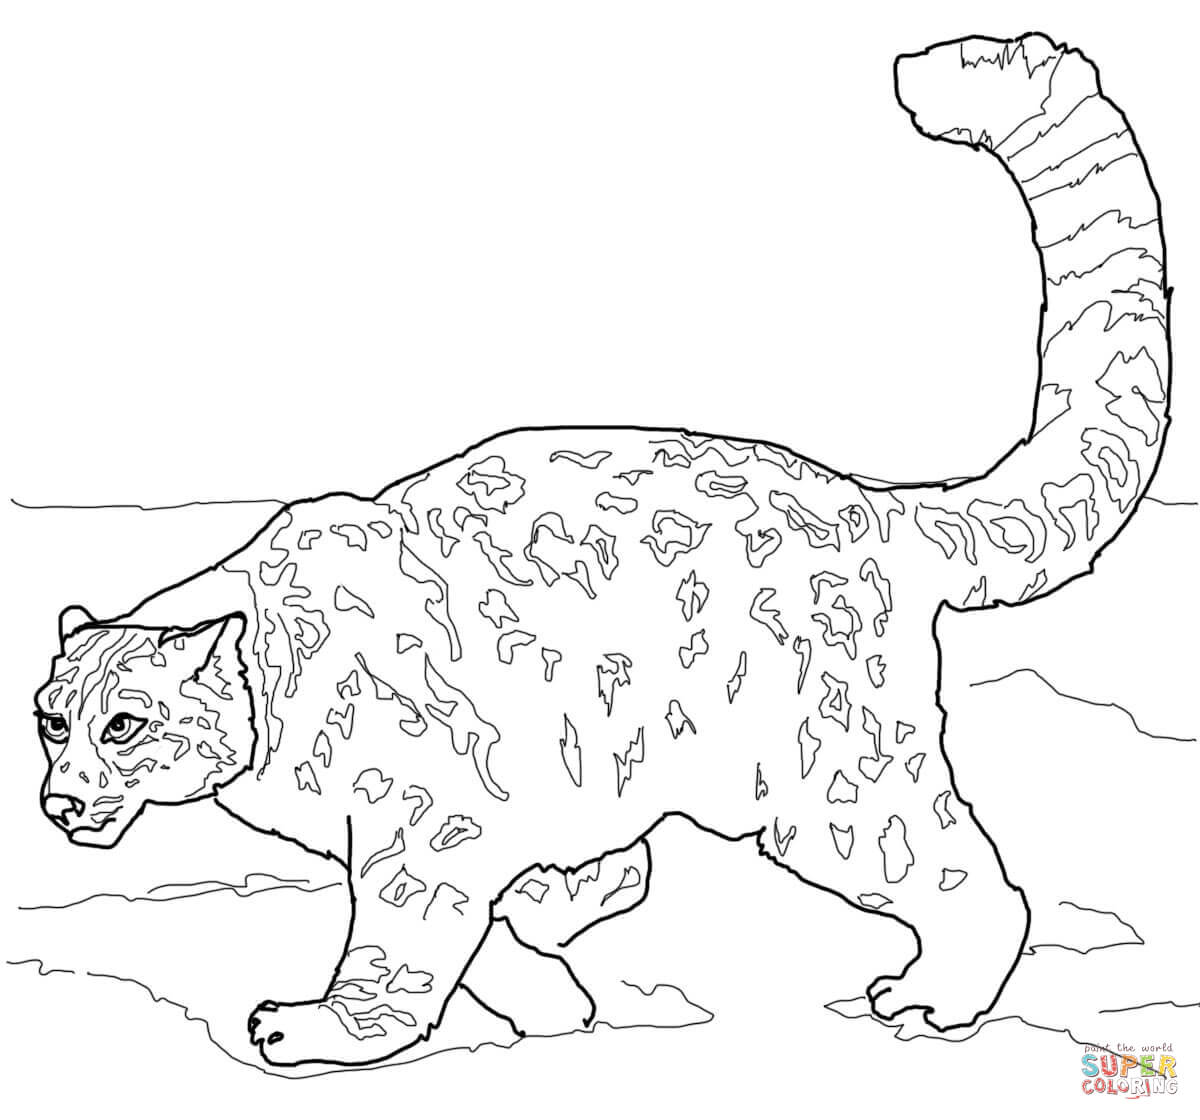 Crouching Snow Leopard Coloring Page